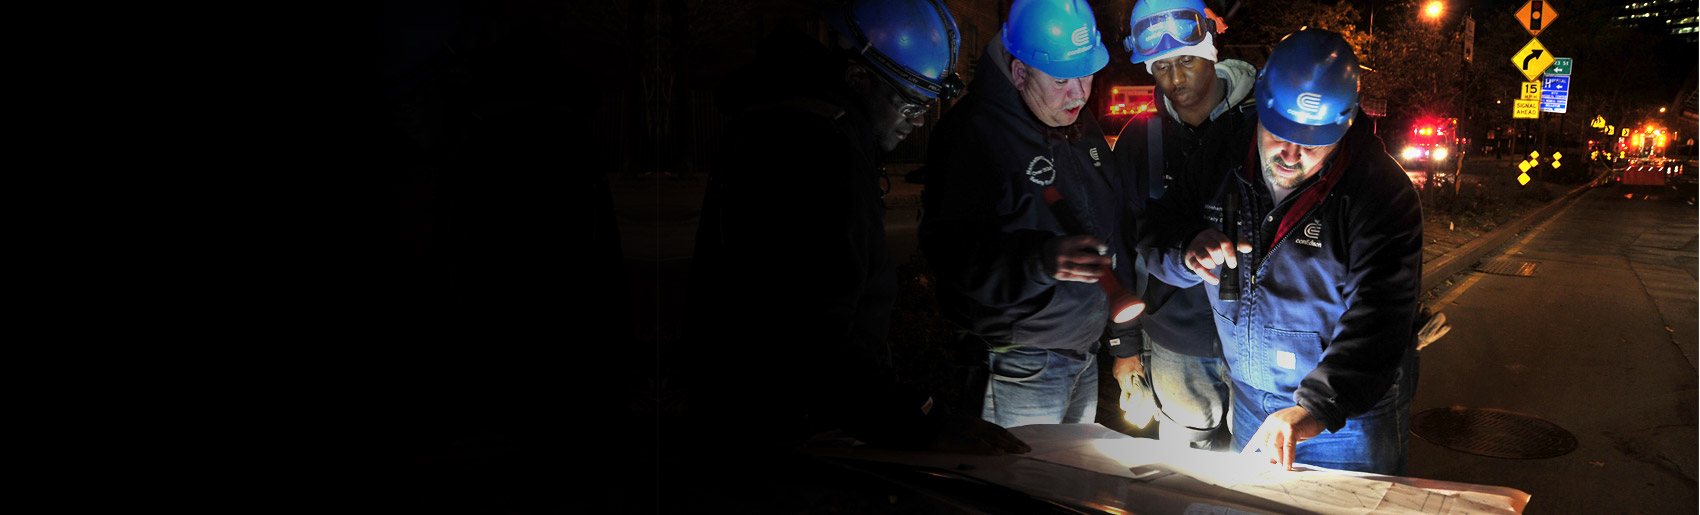 Con Edison workers with flashlights are viewing documents in a darkened city street.